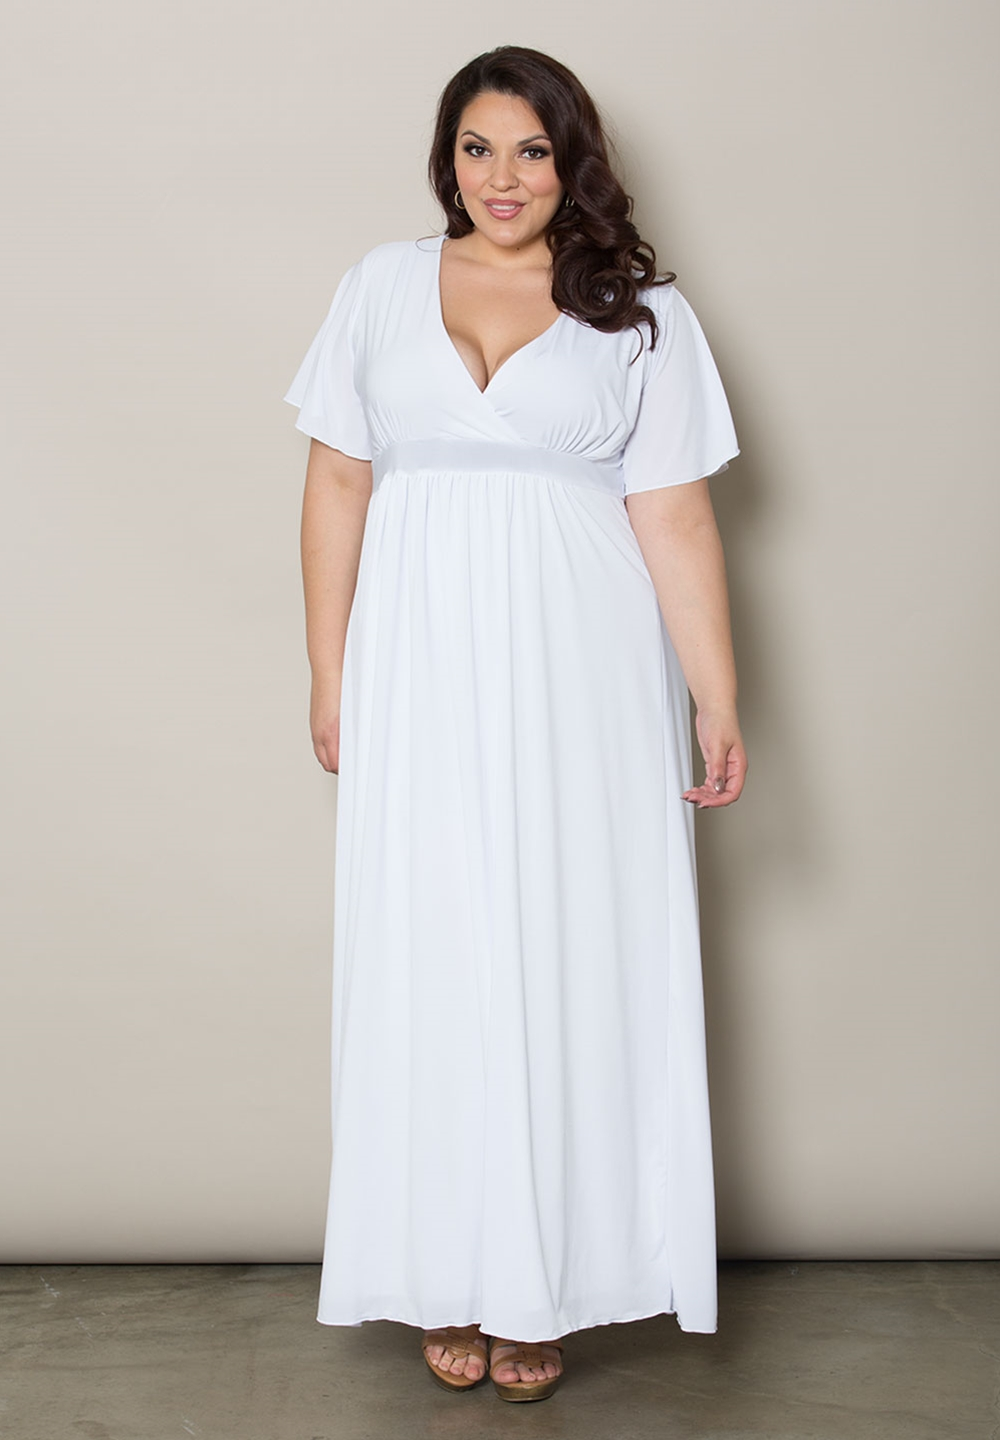 Monty q plus size dresses 30 32